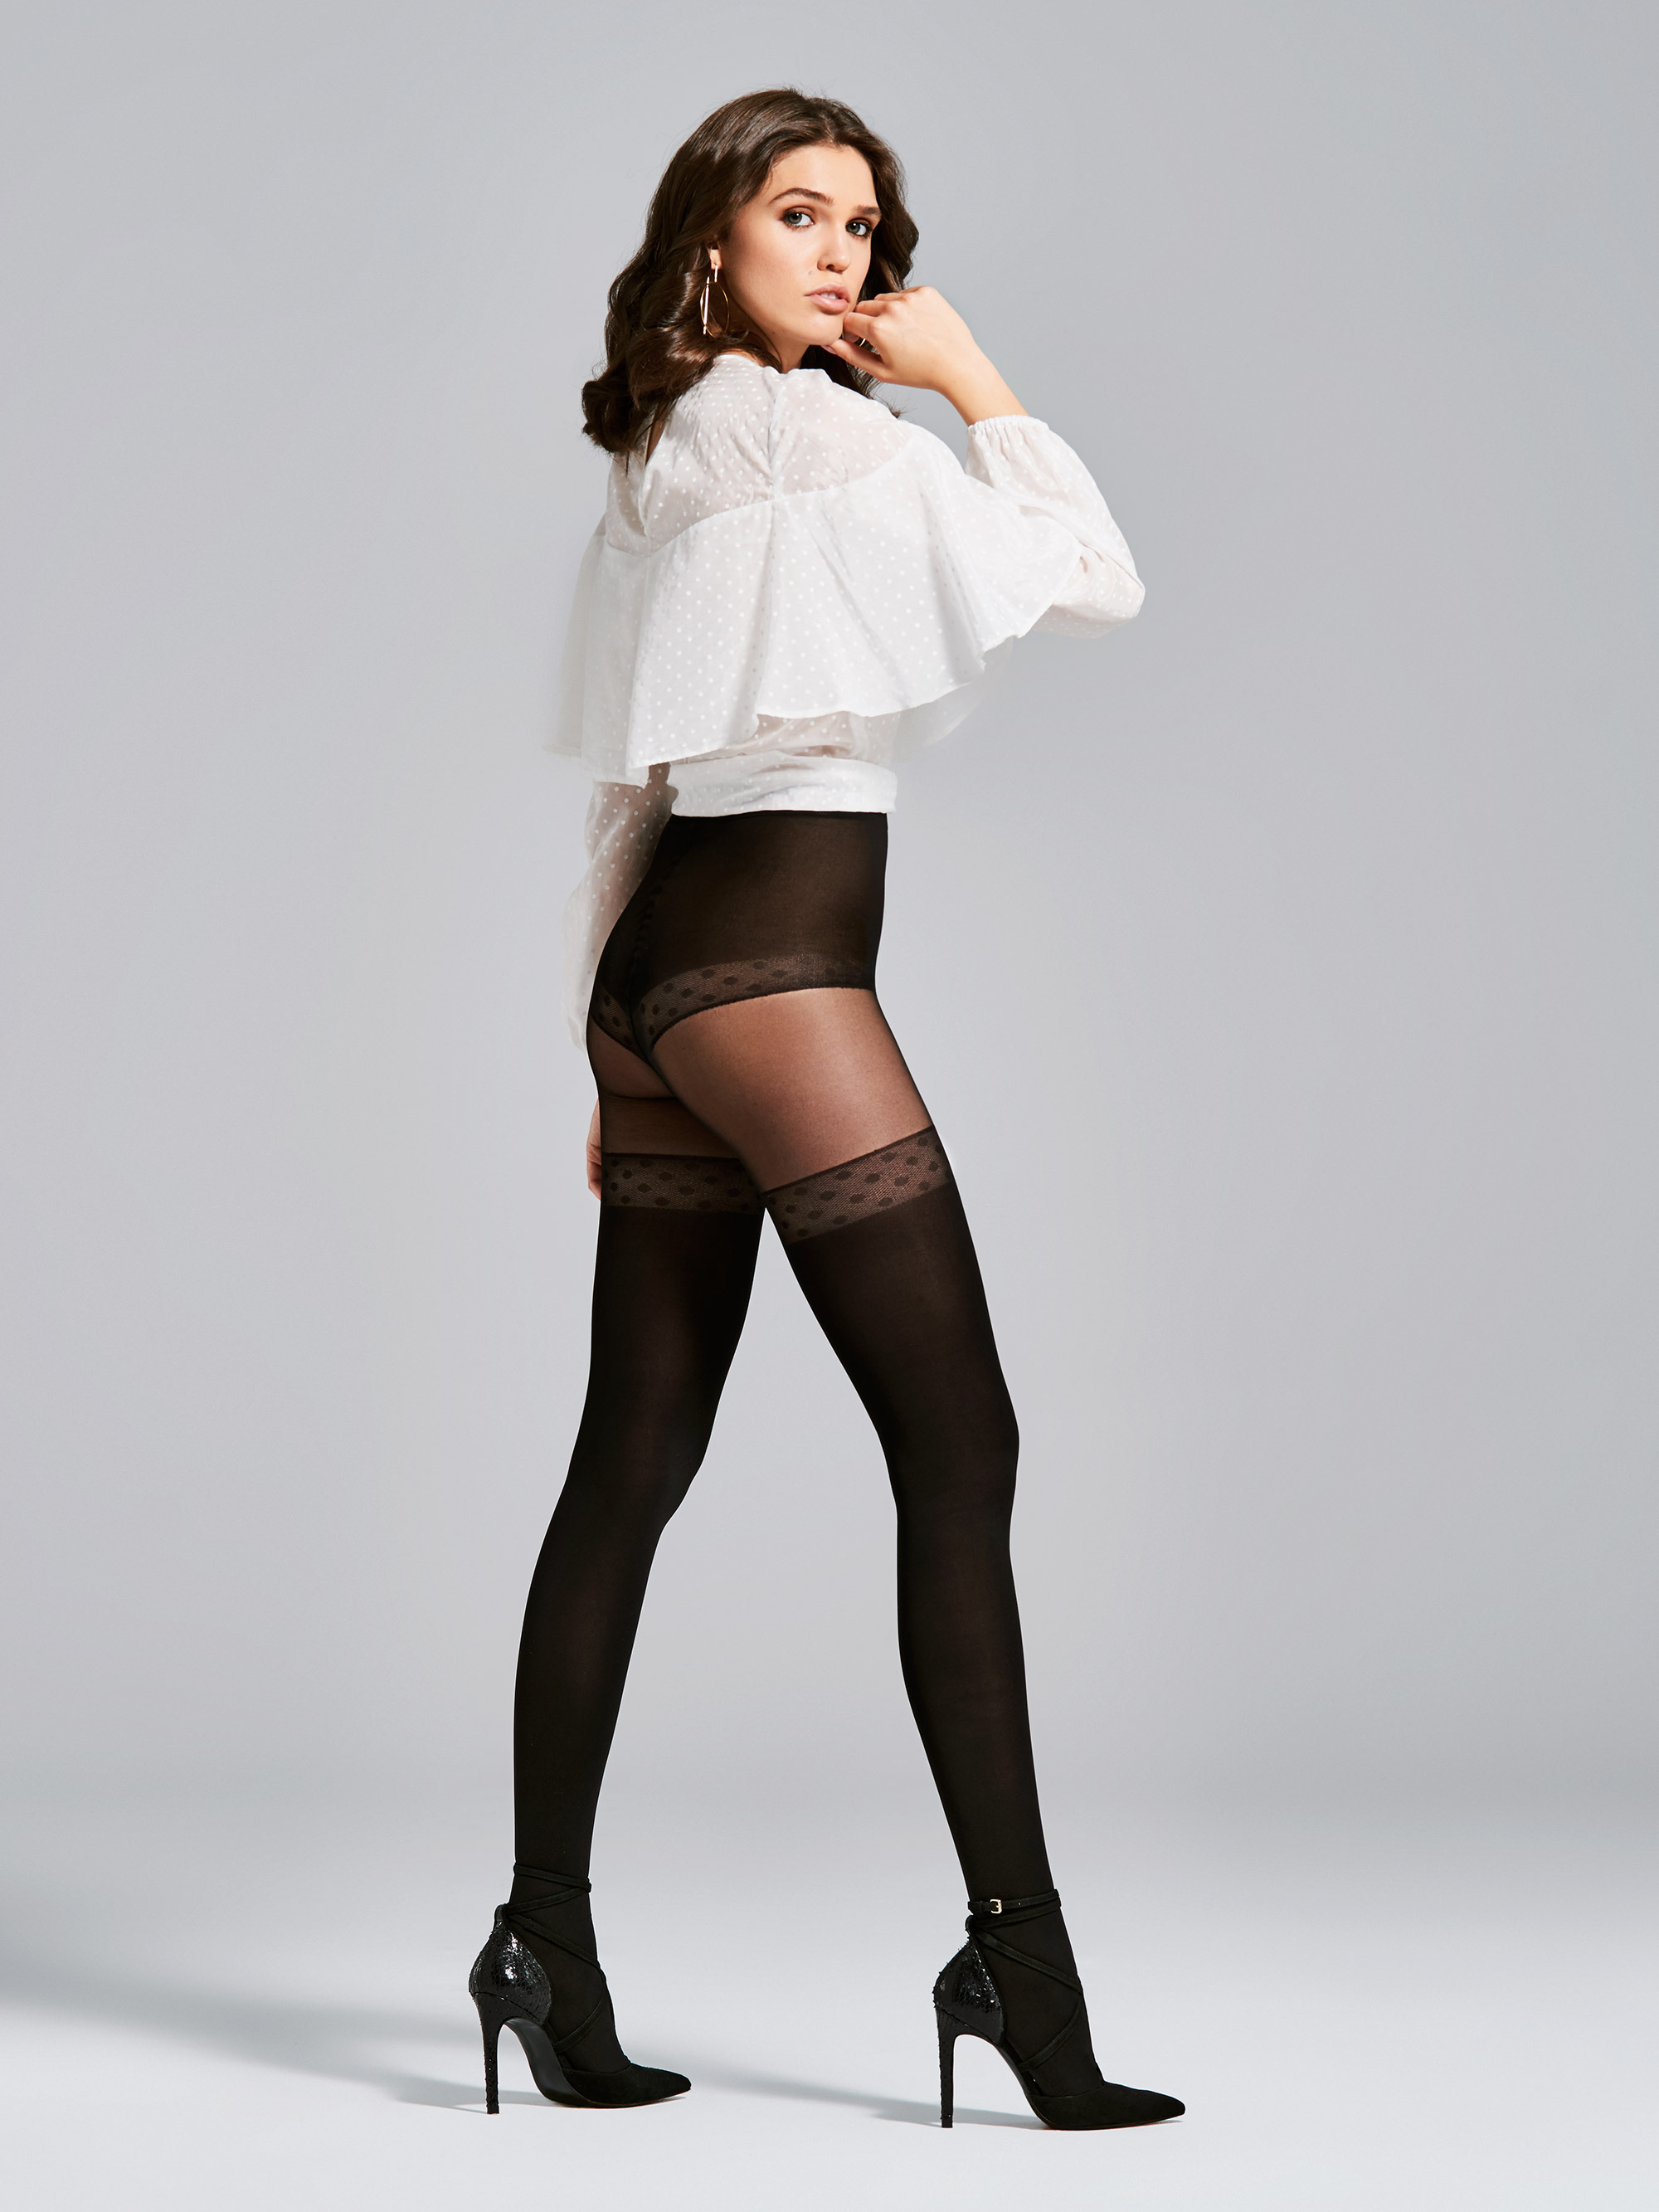 Fiore: Seduction Patterned Opaque Microfibre Tights FIO_SOLEIL_N